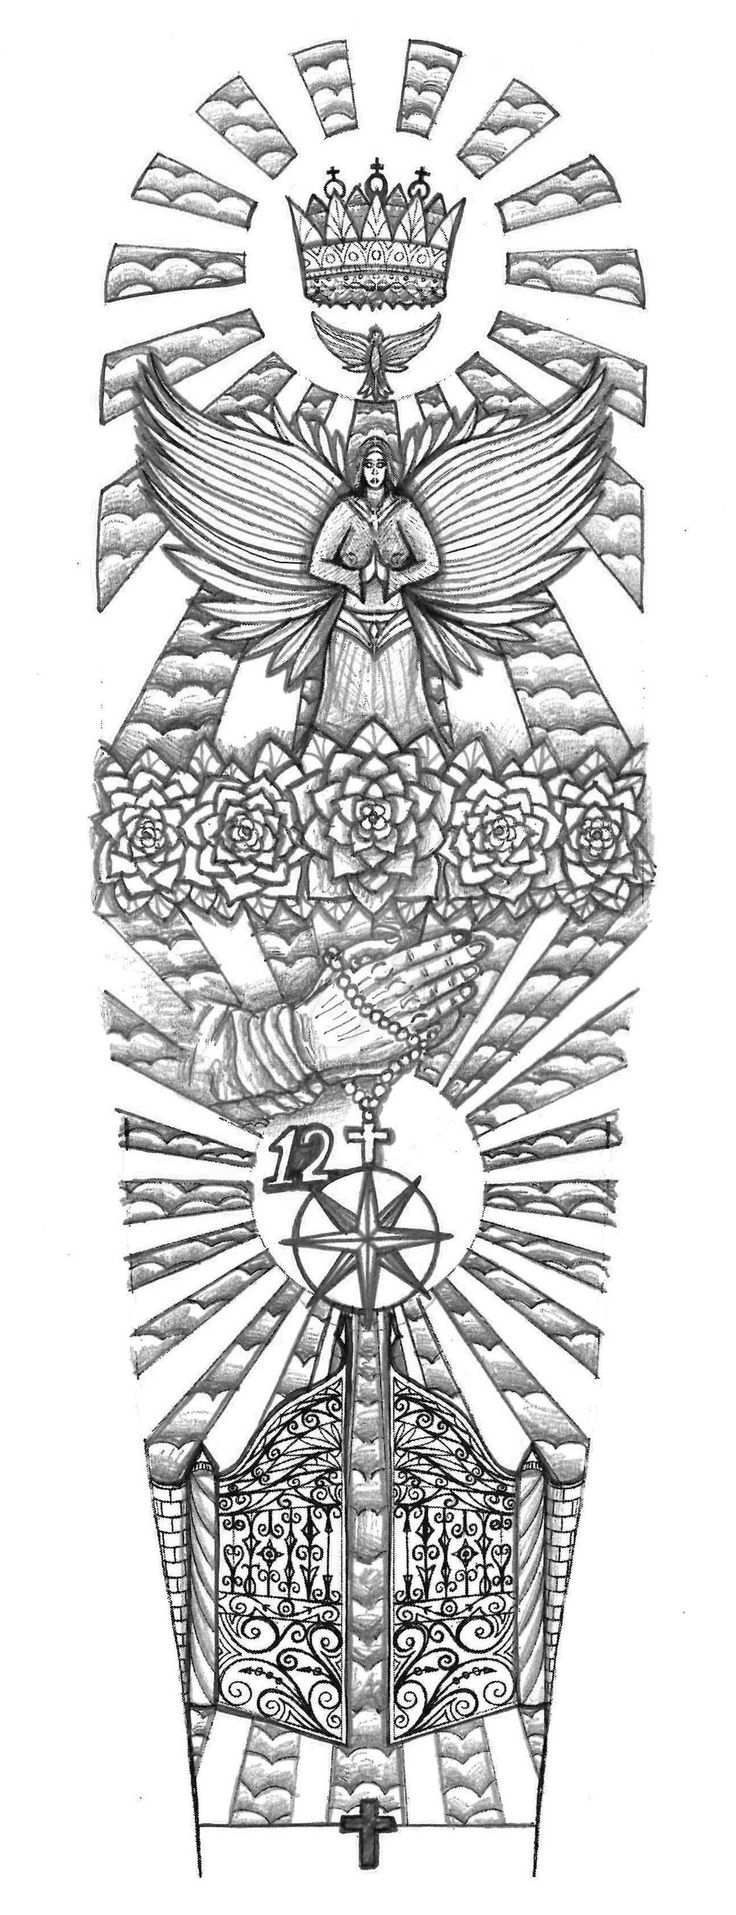 Religious Gates of Heaven tattoo design by thehoundofulster